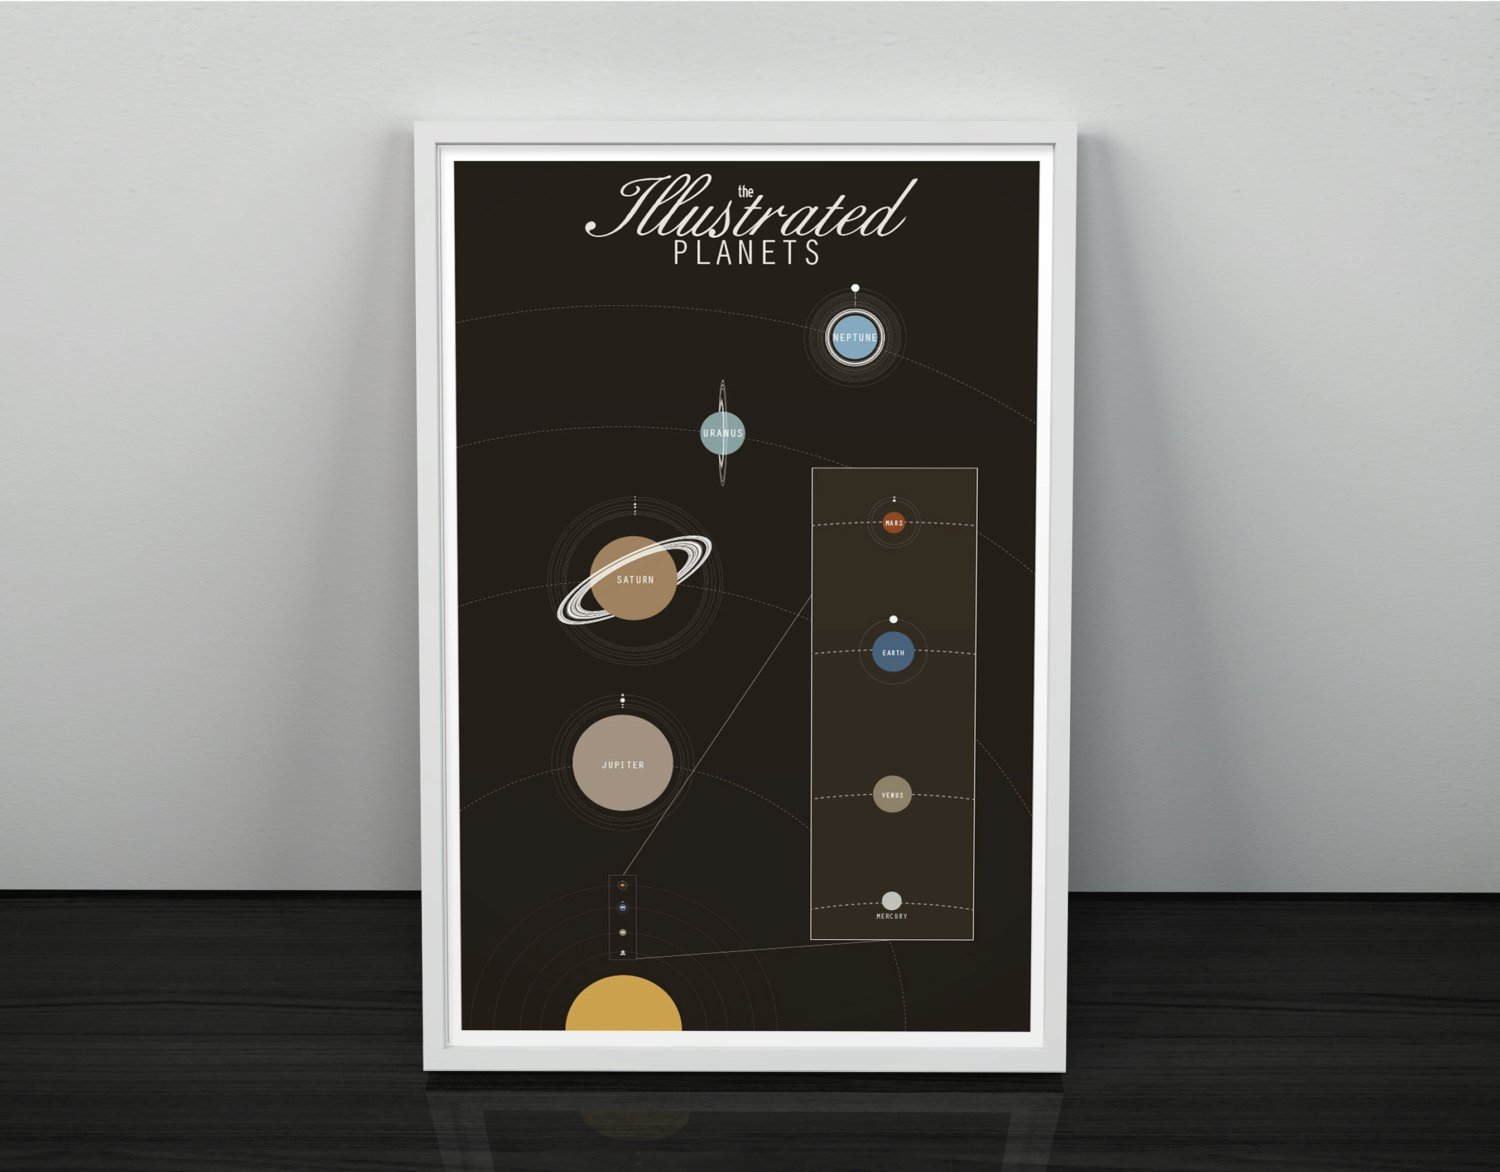 Geek Art Solar System Print//Minimalist Planetary Infographic Poster with all the Planets